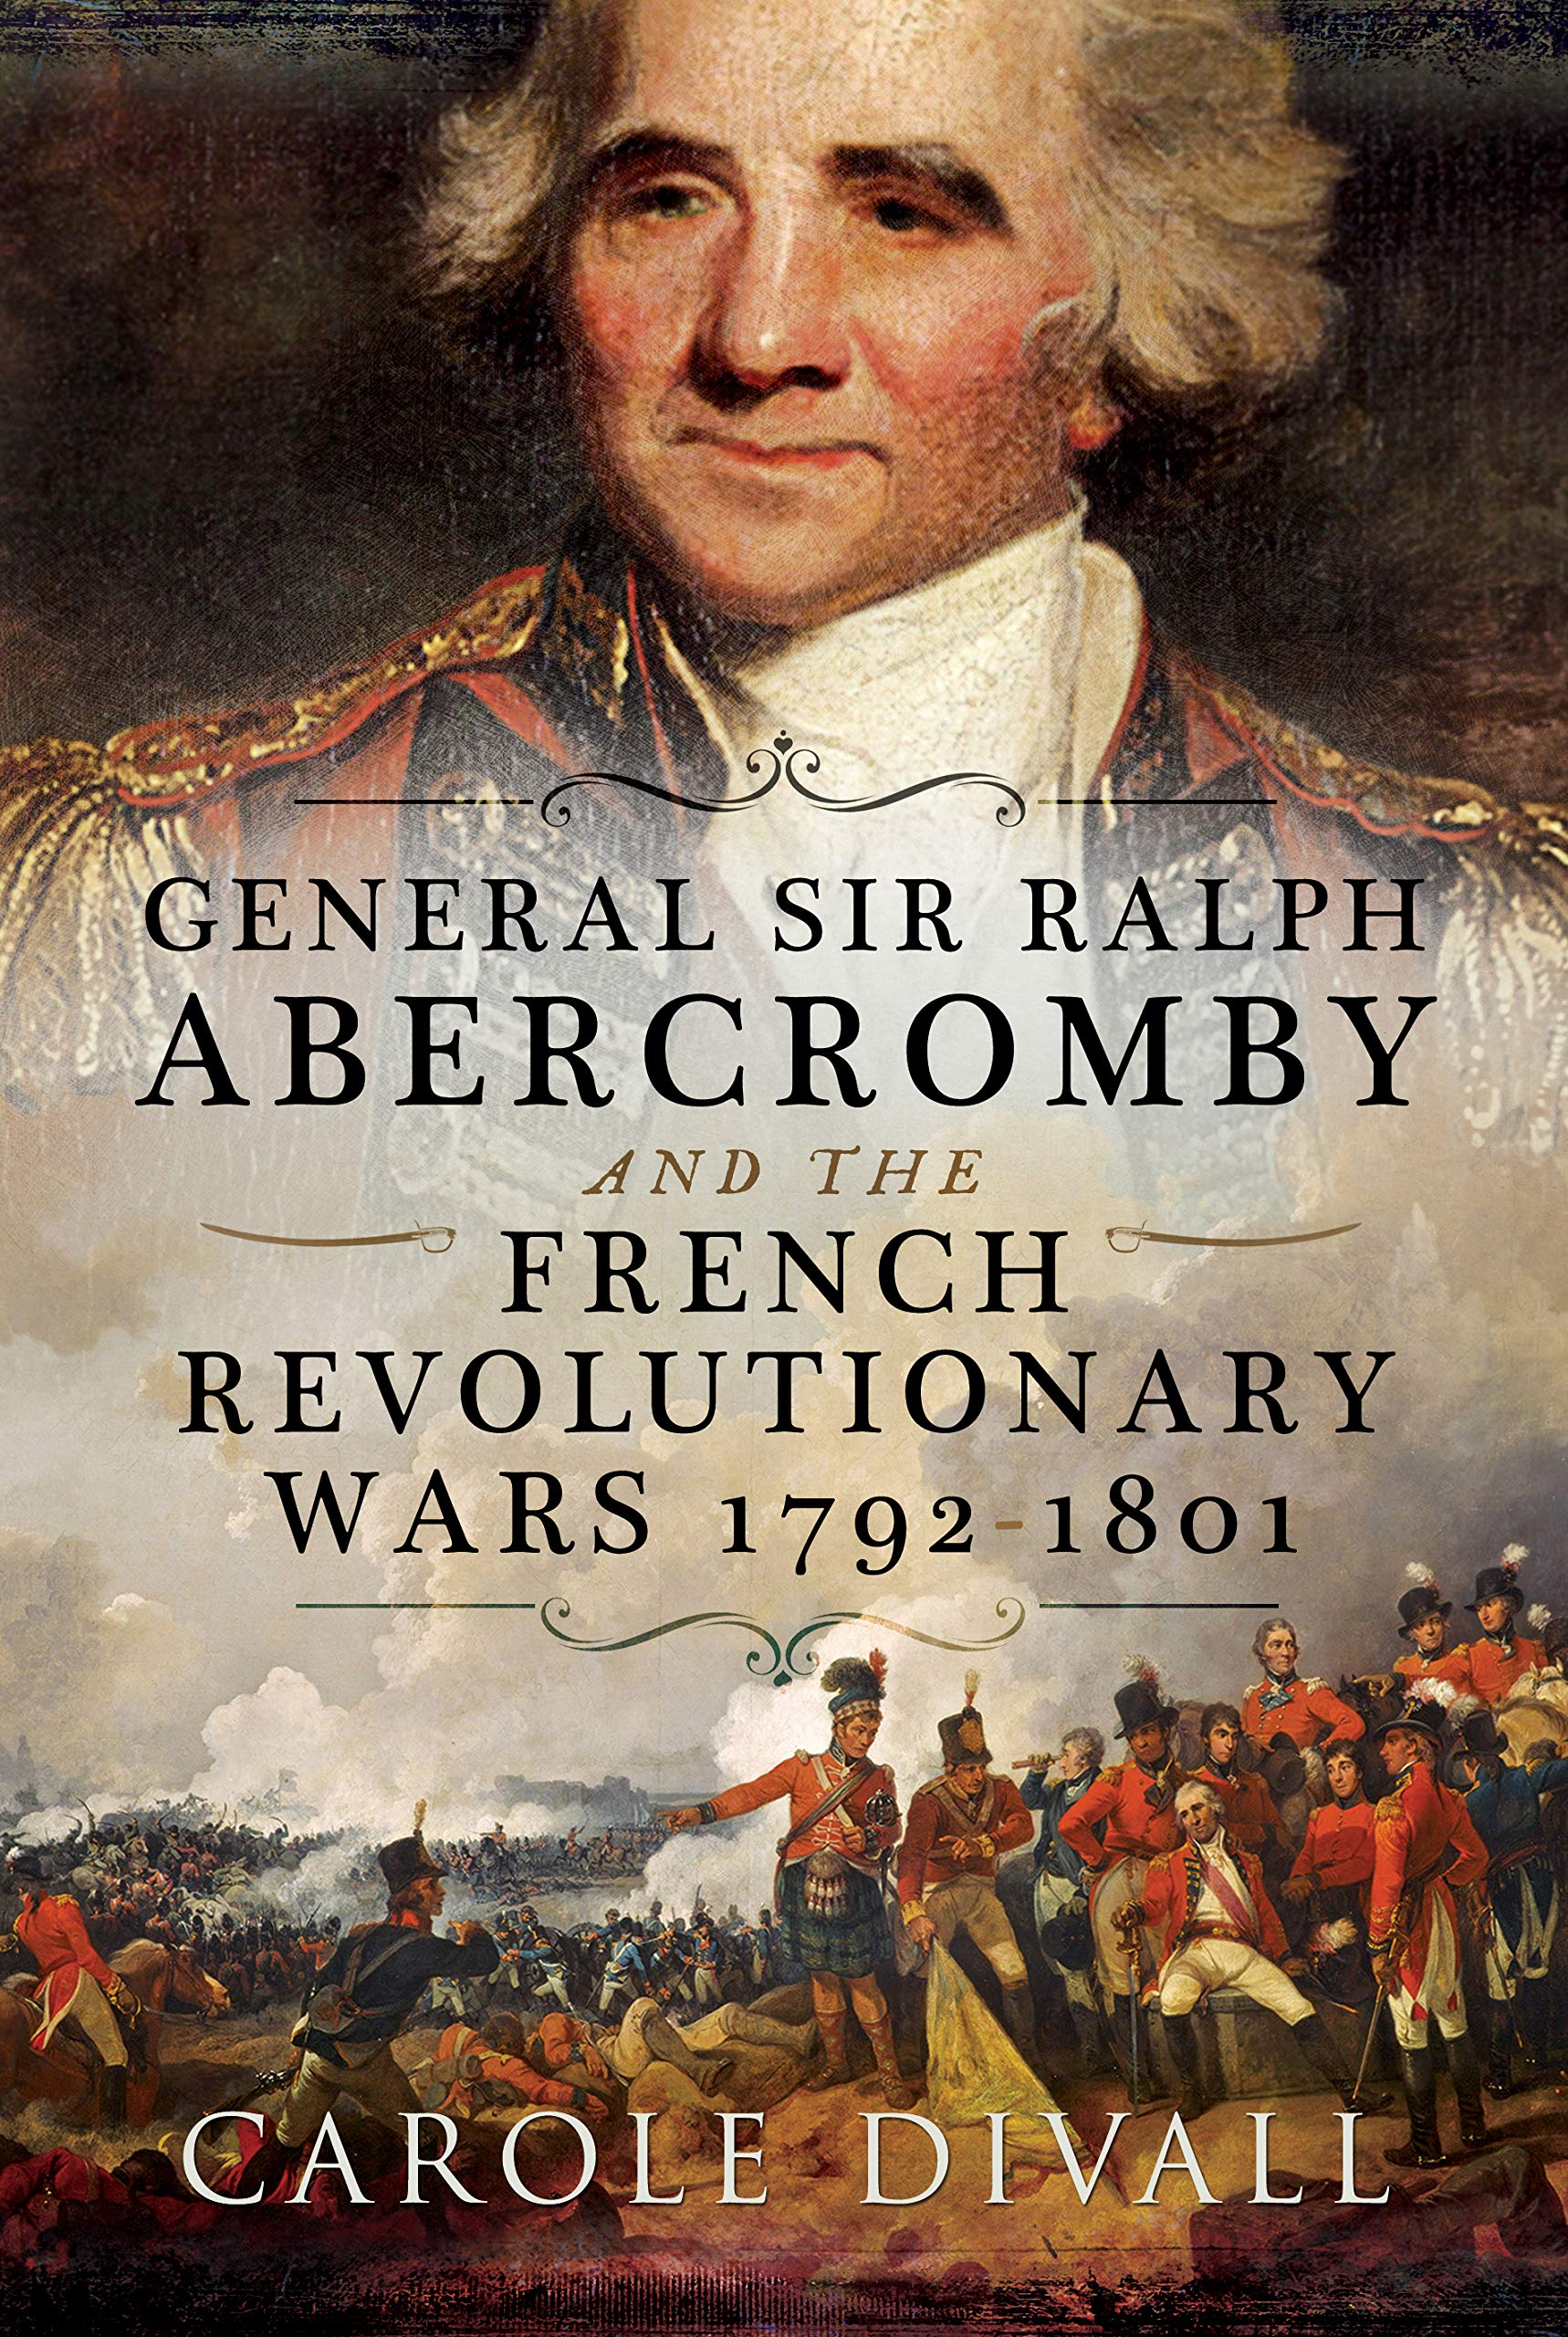 General Sir Ralph Abercromby and the French Revolutionary Wars 1792-1801:  Amazon.co.uk: Carole Divall: 9781526741462: Books